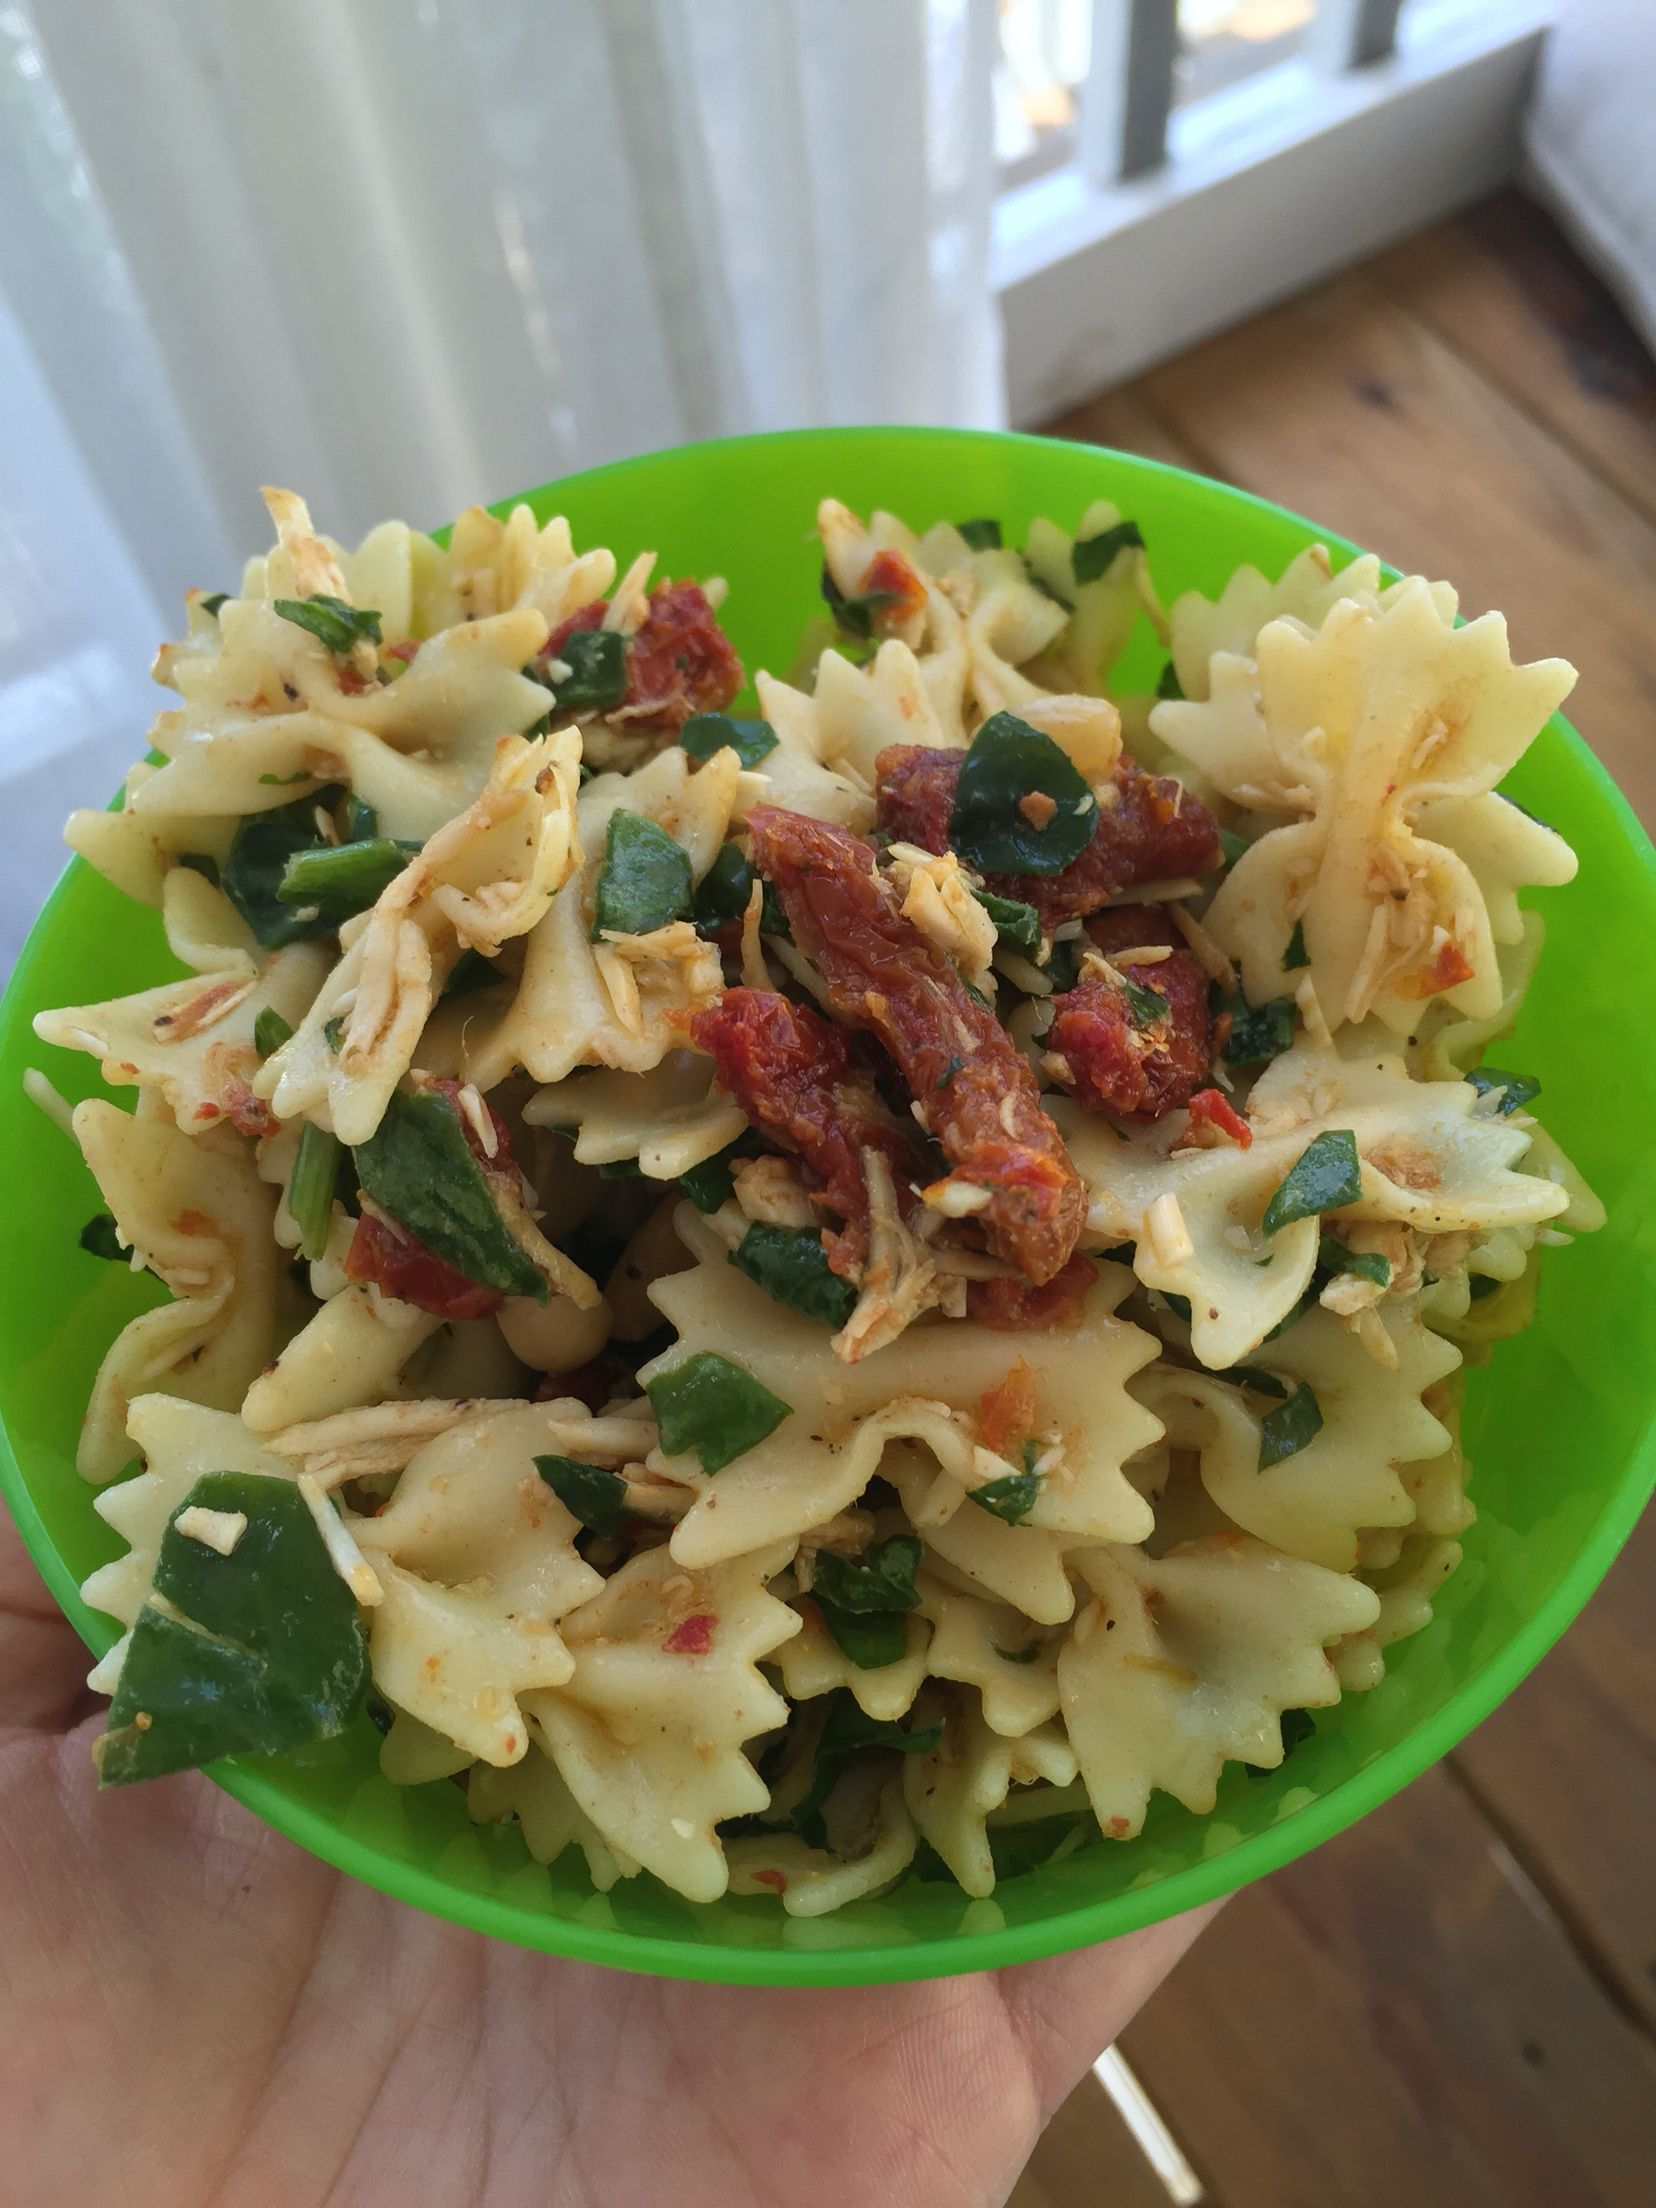 Jaclyn's Pasta Salad // Fresh basil, fresh spinach, Parmesan cheese, bow tie pasta, lemon, olive oil, and Italian seasoned sundried tomatoes packed in oil (glass jar), salt and pepper - all to taste